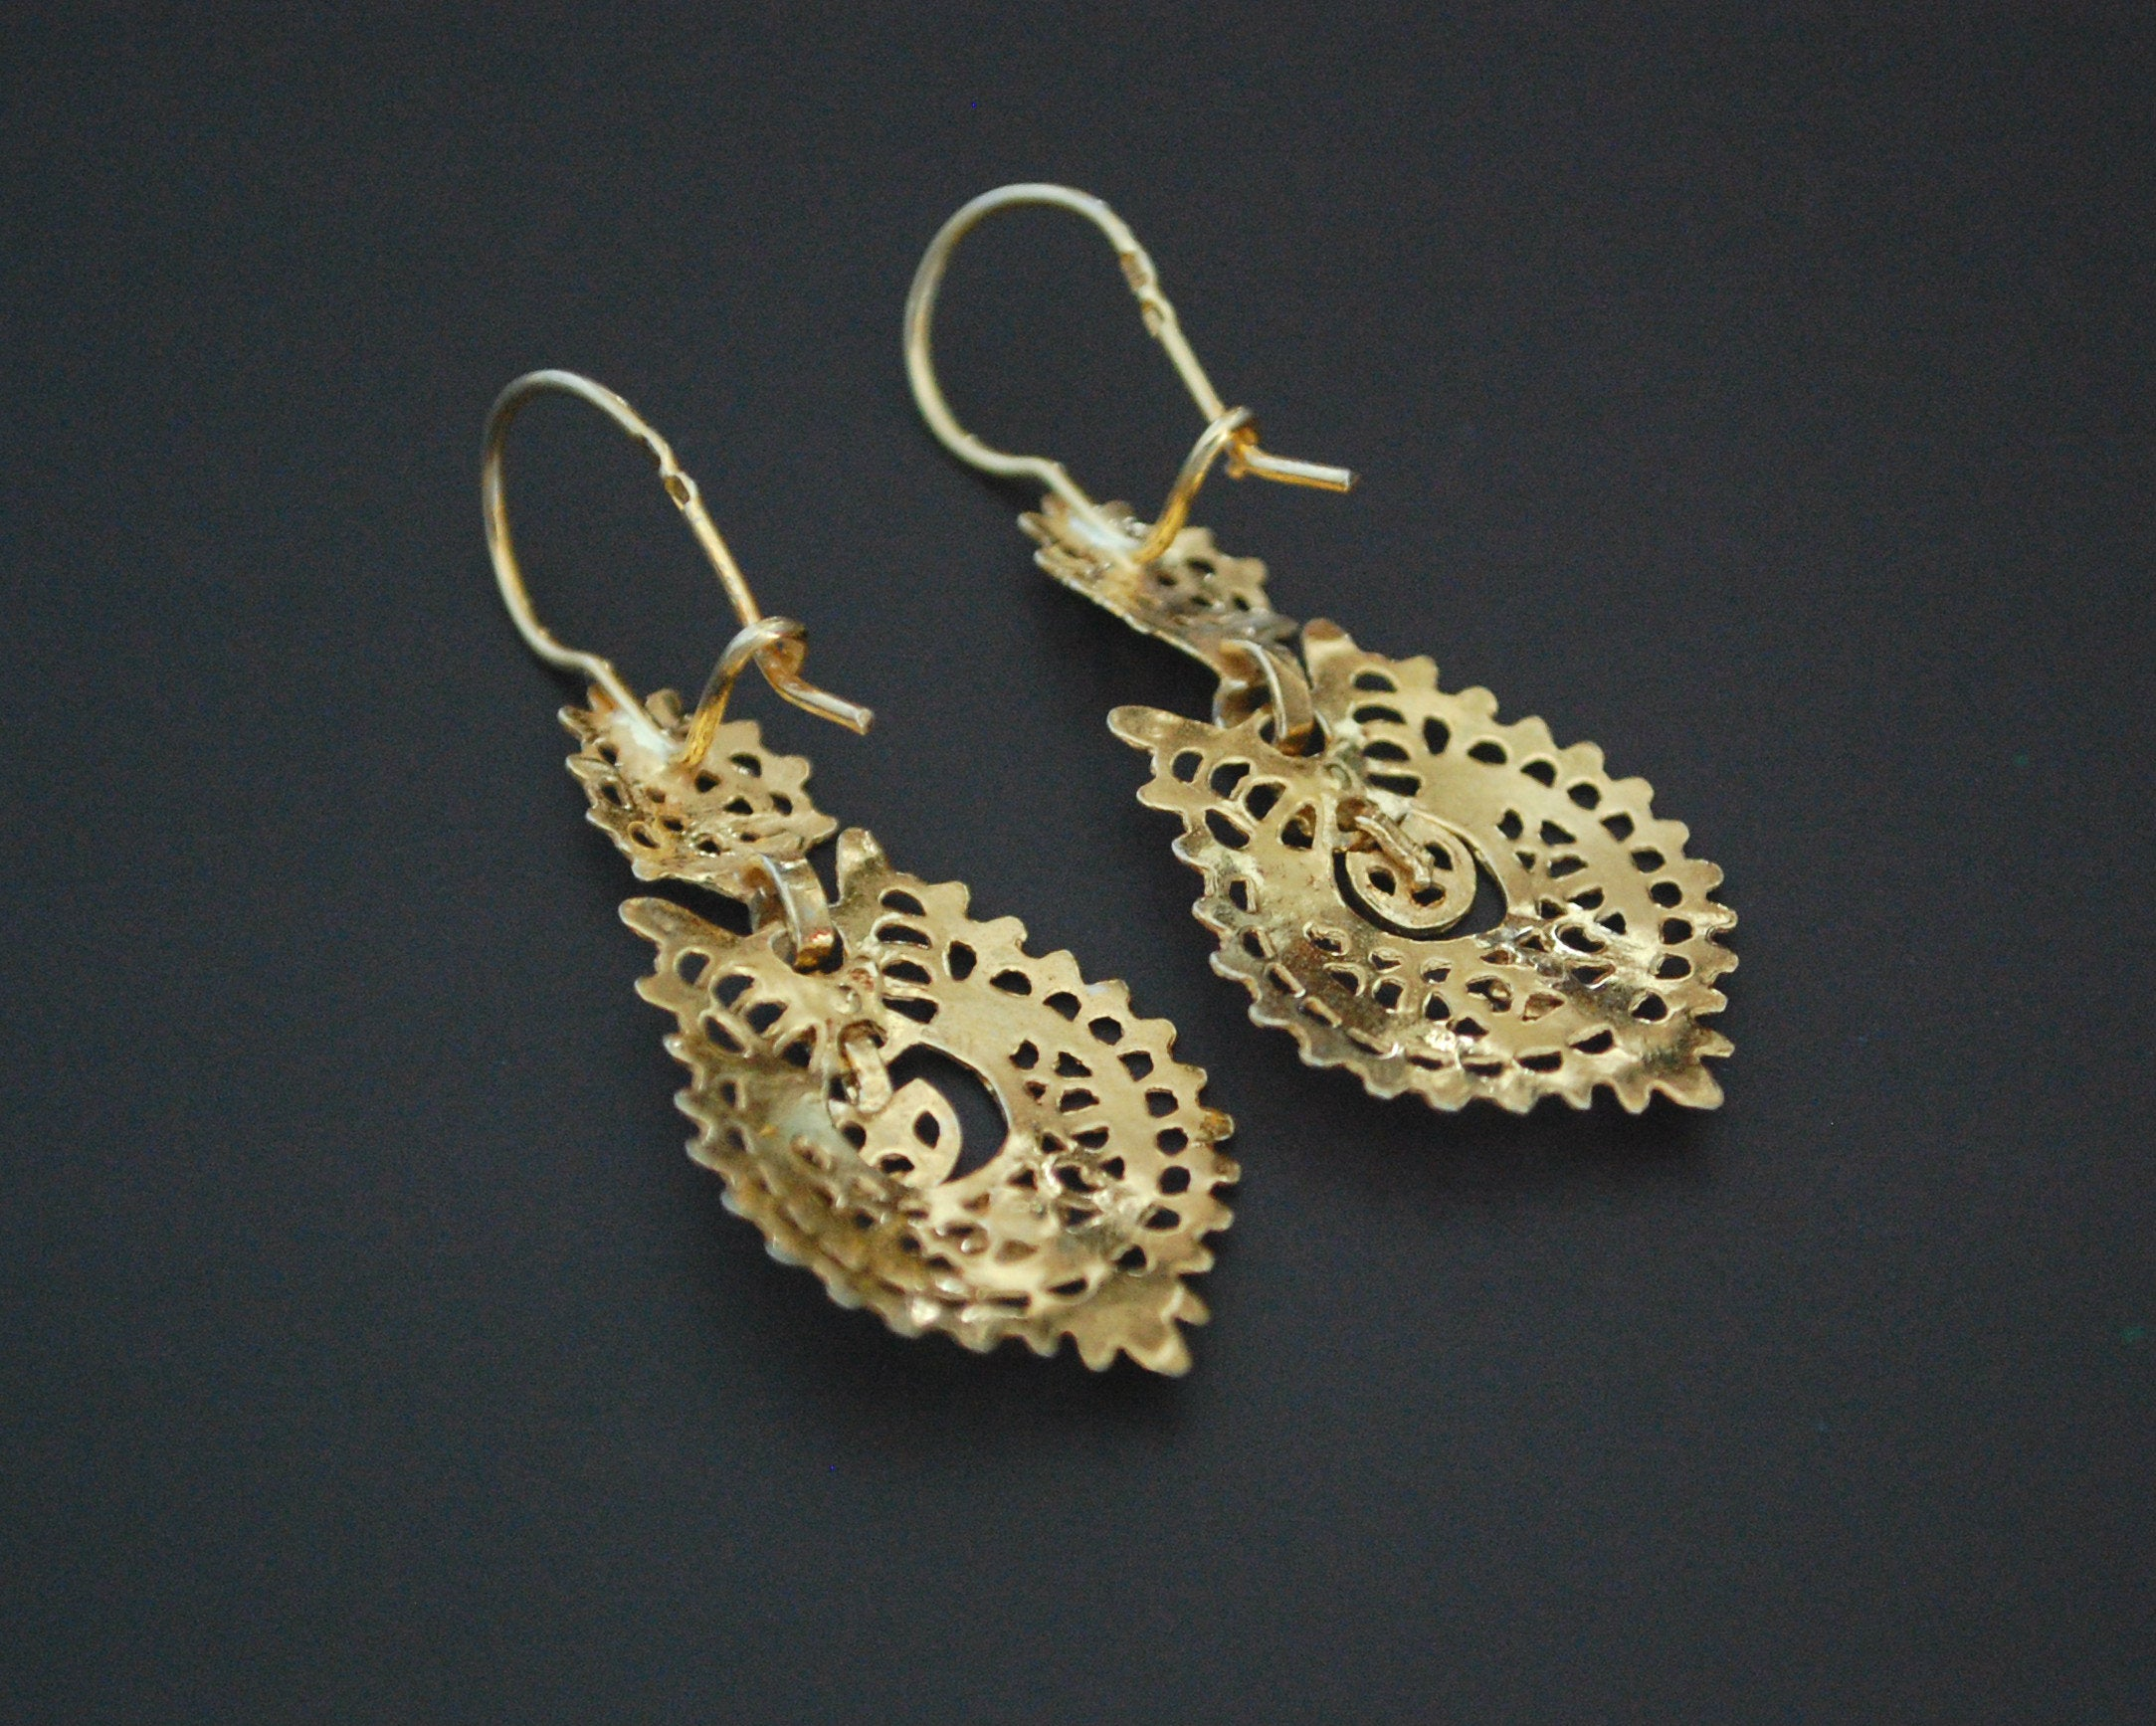 Gilded Ethnic Earrings from Portugal